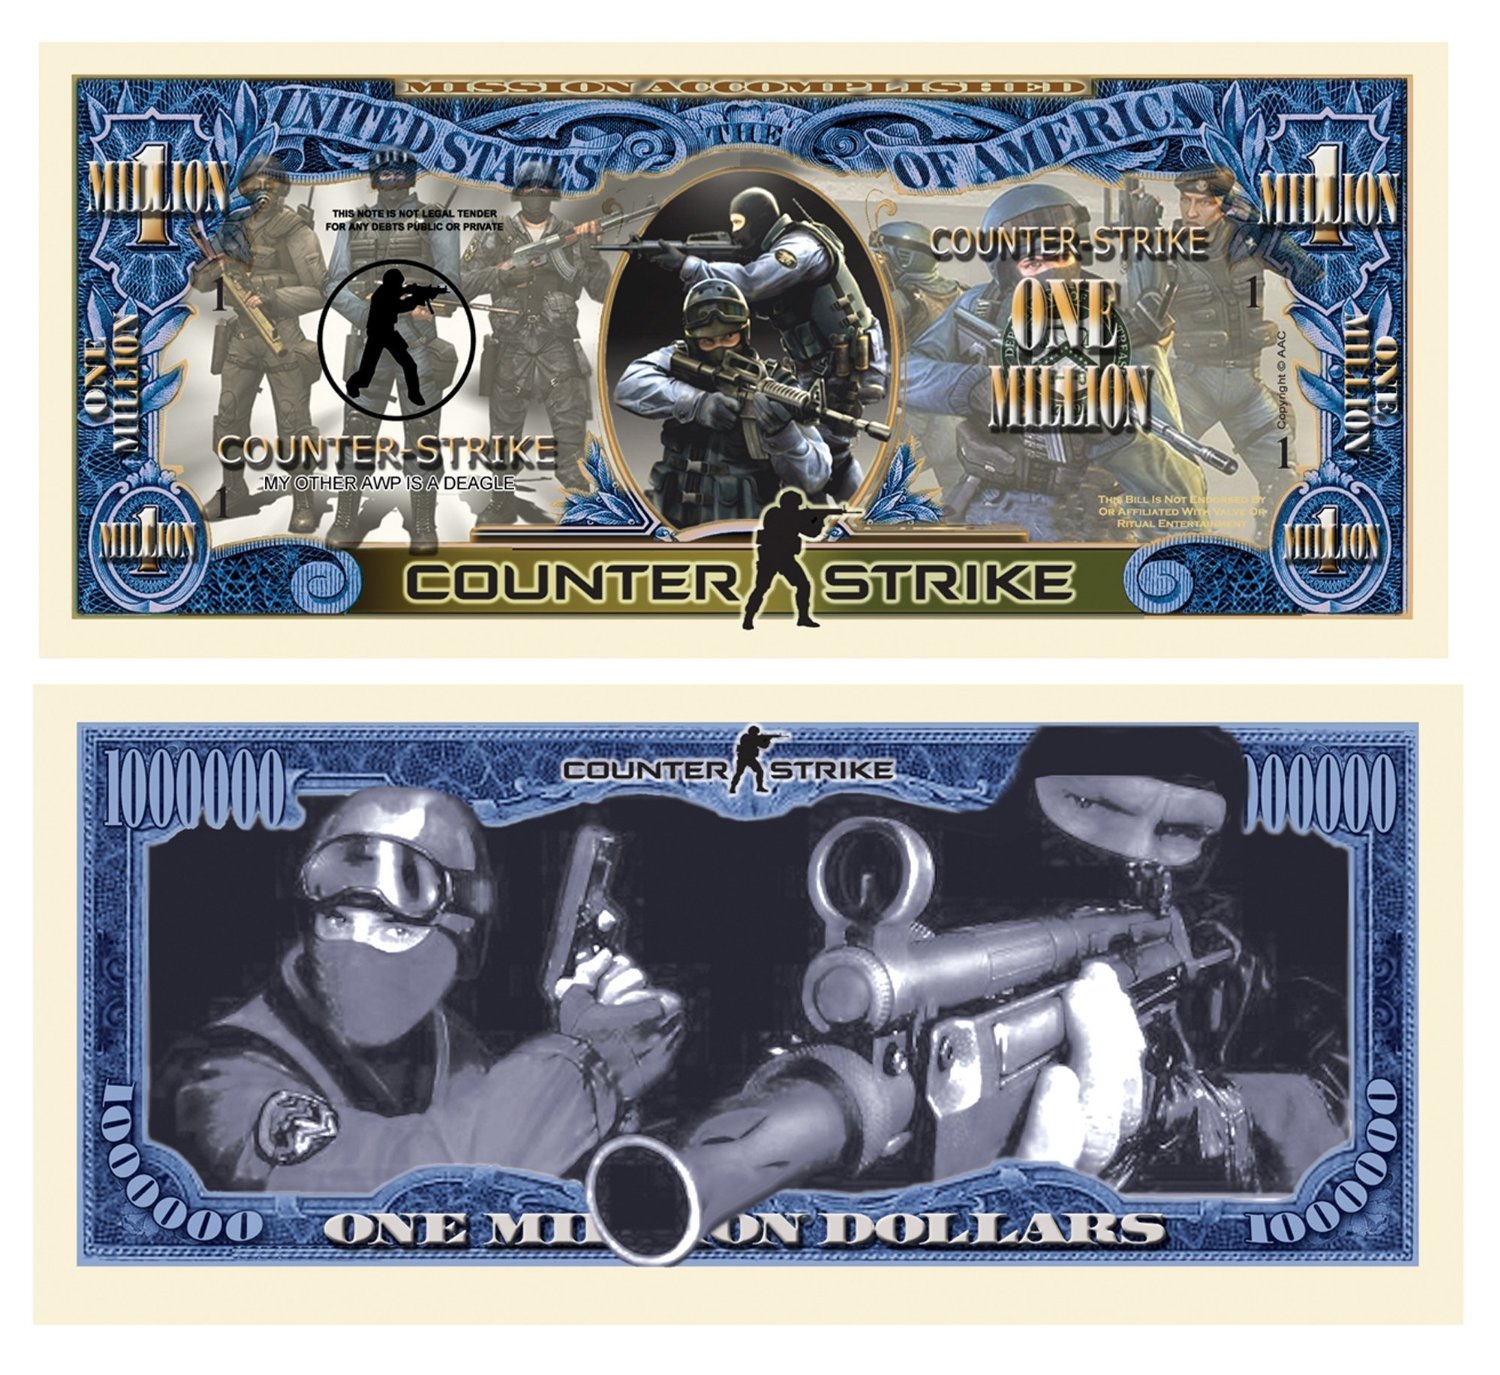 Limited Edition Counter Strike Collectible Million Dollar Bill in Currency Holder